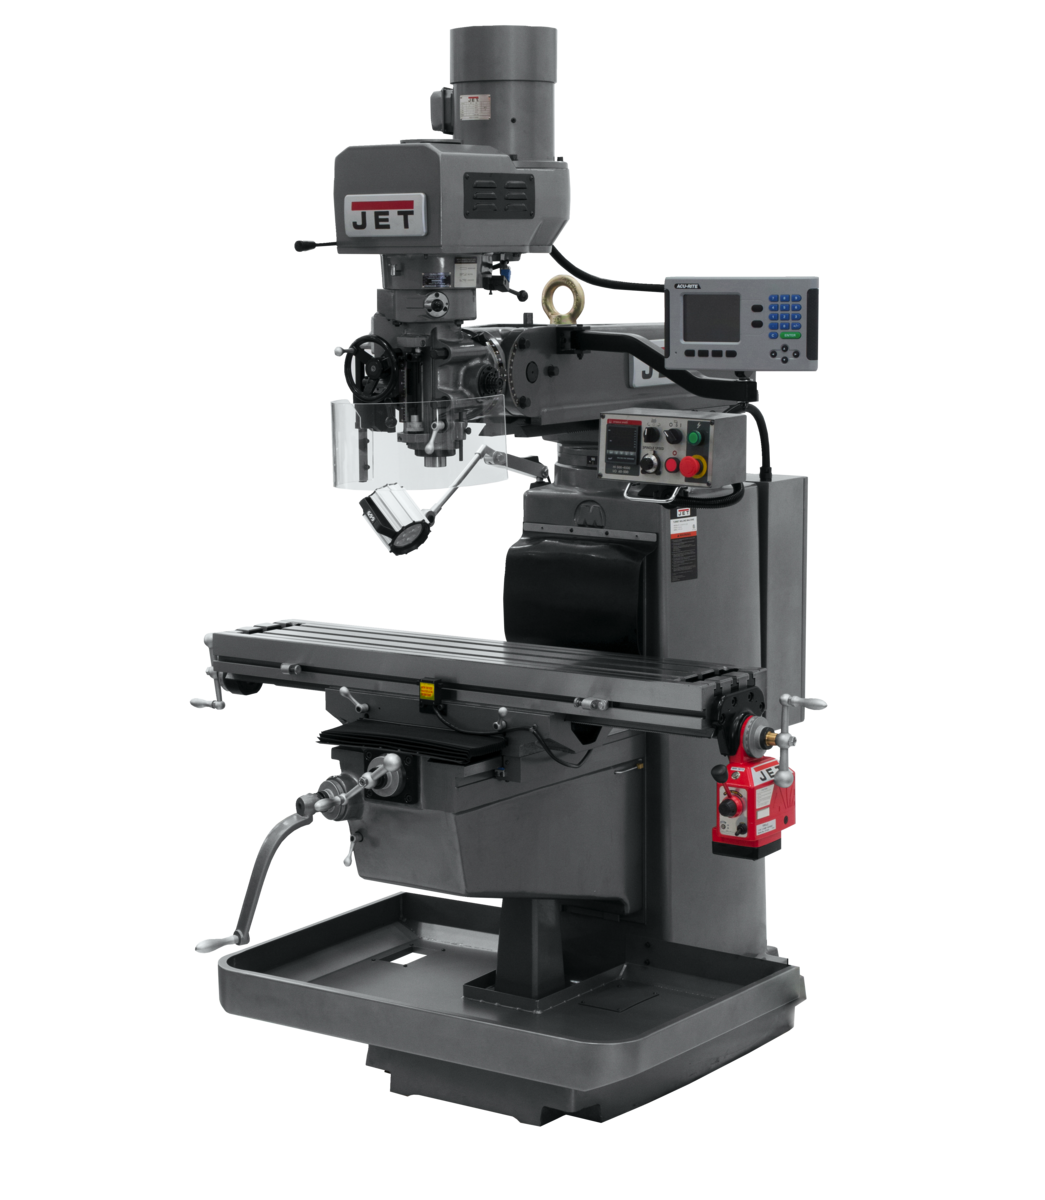 JTM-1050EVS2/230 Mill With 3-Axis Acu-Rite 203 DRO (Quill) With X-Axis Powerfeed